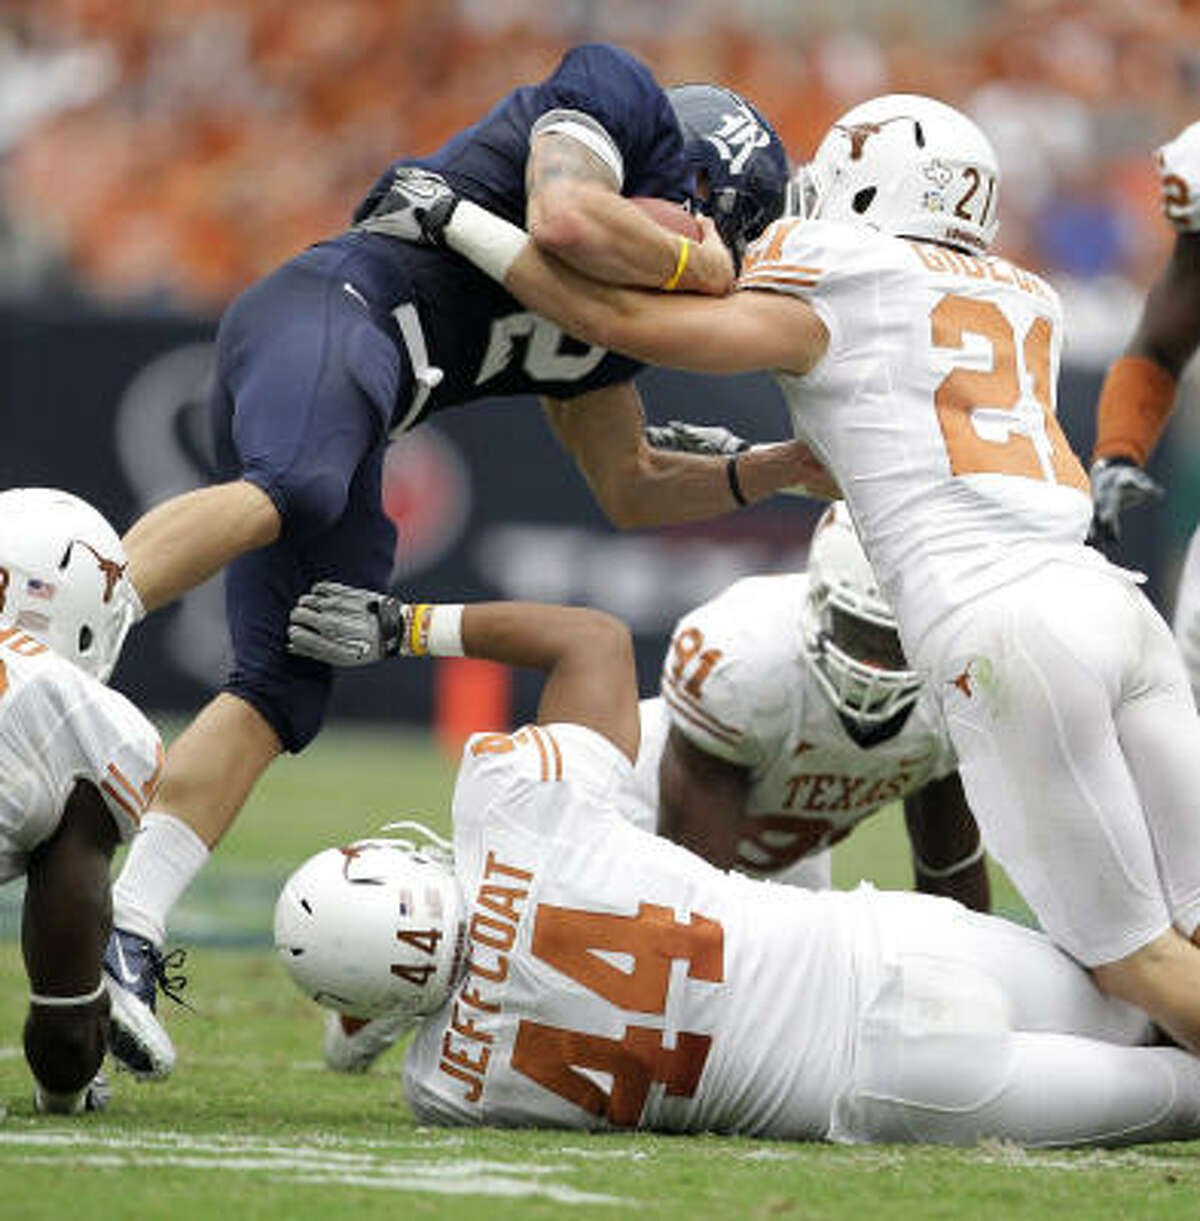 Rice running back Sam McGuffie (2) is hit hard by Texas safety Blake Gideon (21) as he tries to jump over a pile of players.